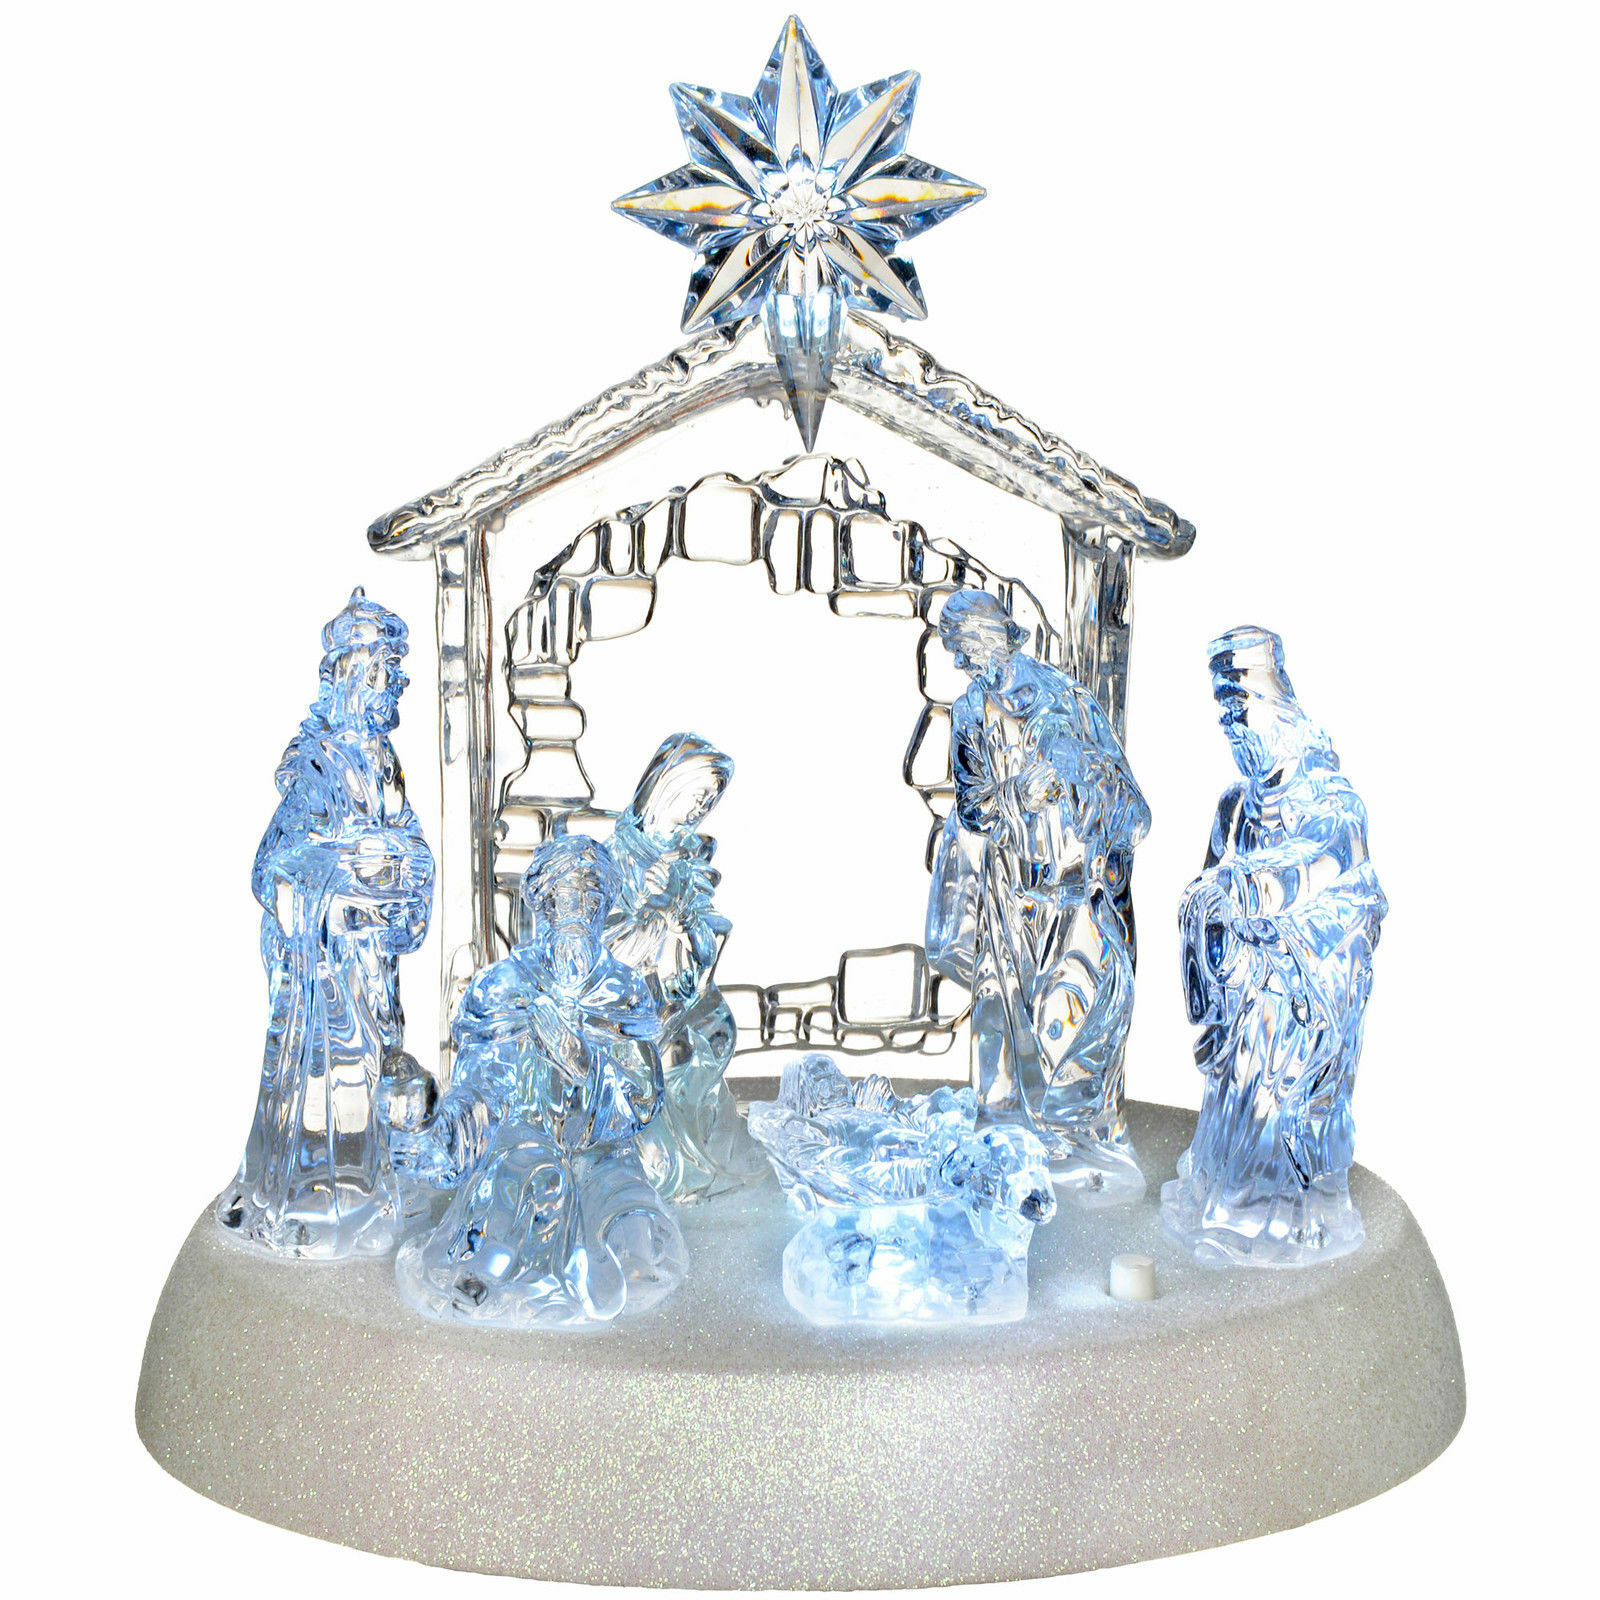 18CM XMAS PRE LIT LED MUSICAL NATIVITY CHRISTMAS SCENE DECORATION 545